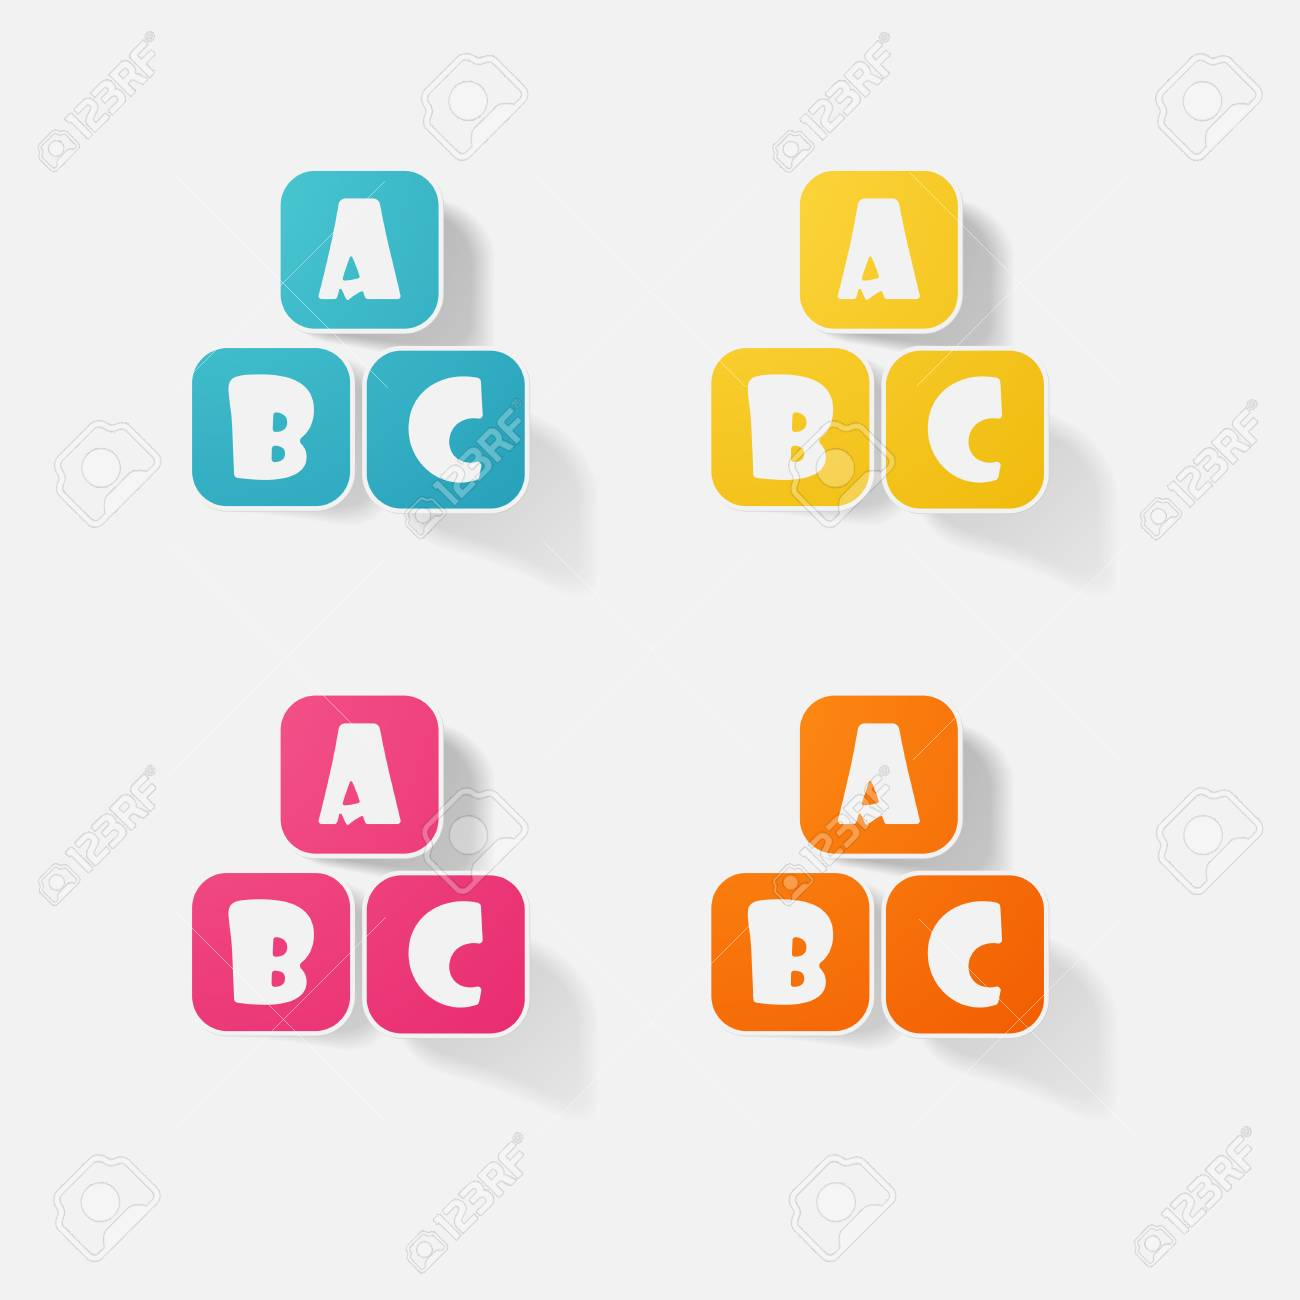 Sticker paper products realistic element design letters a b c stock vector 68373946